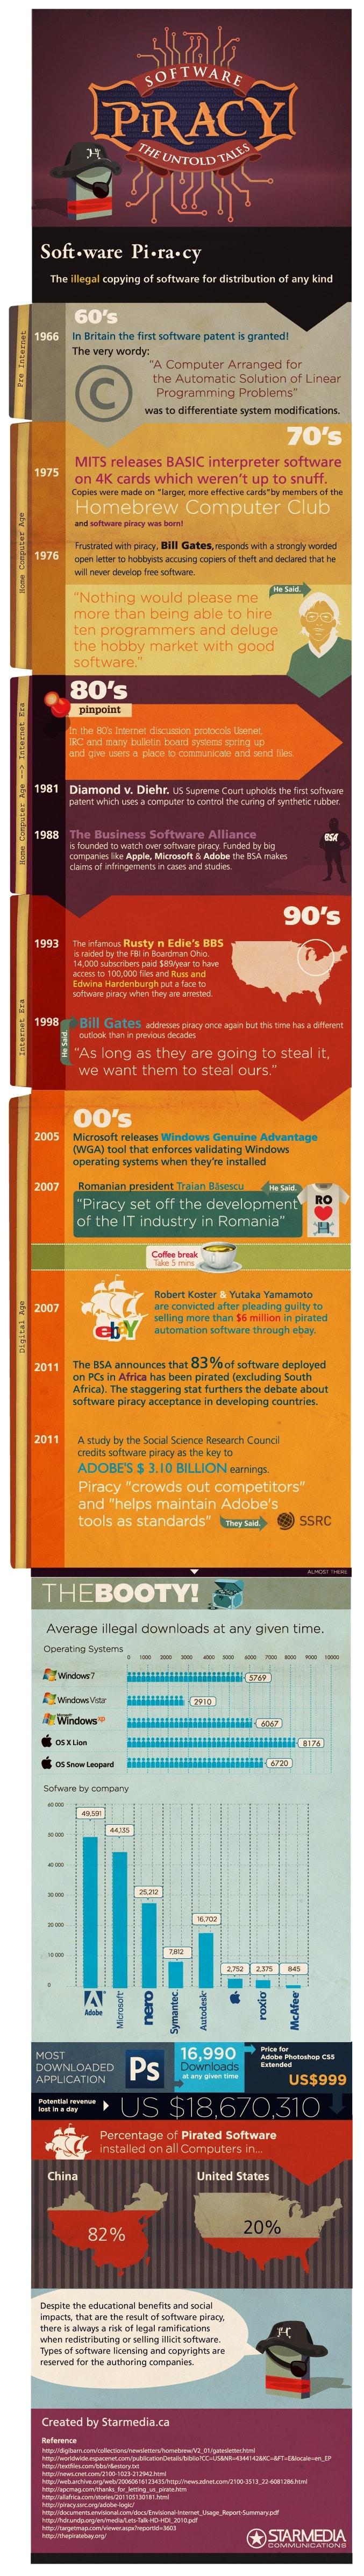 Software Piracy: The Untold Tales [Infographic]